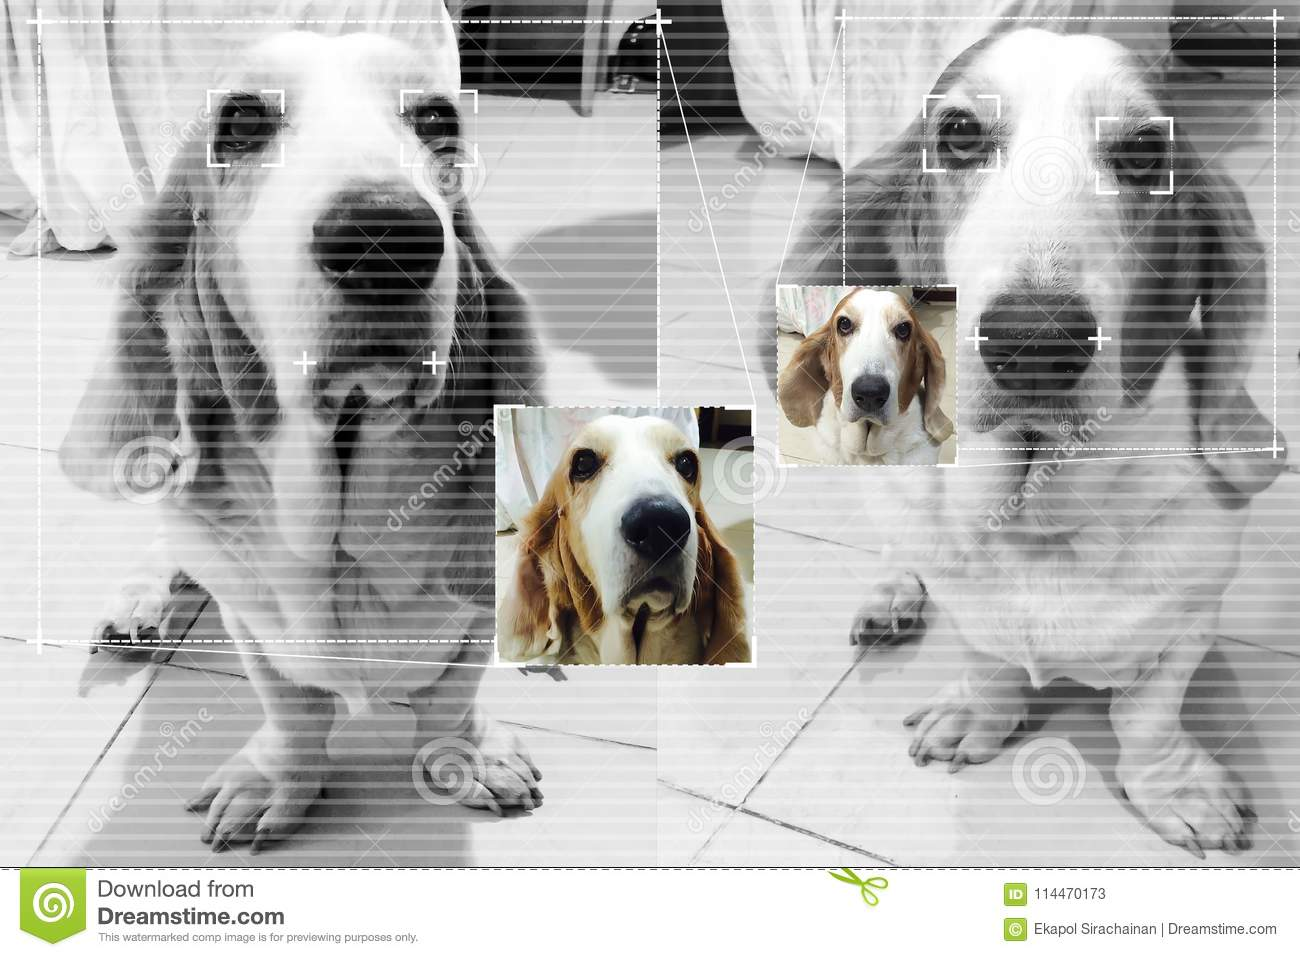 Face detection technology for dog basset hound with screen detection line and cute color image background.